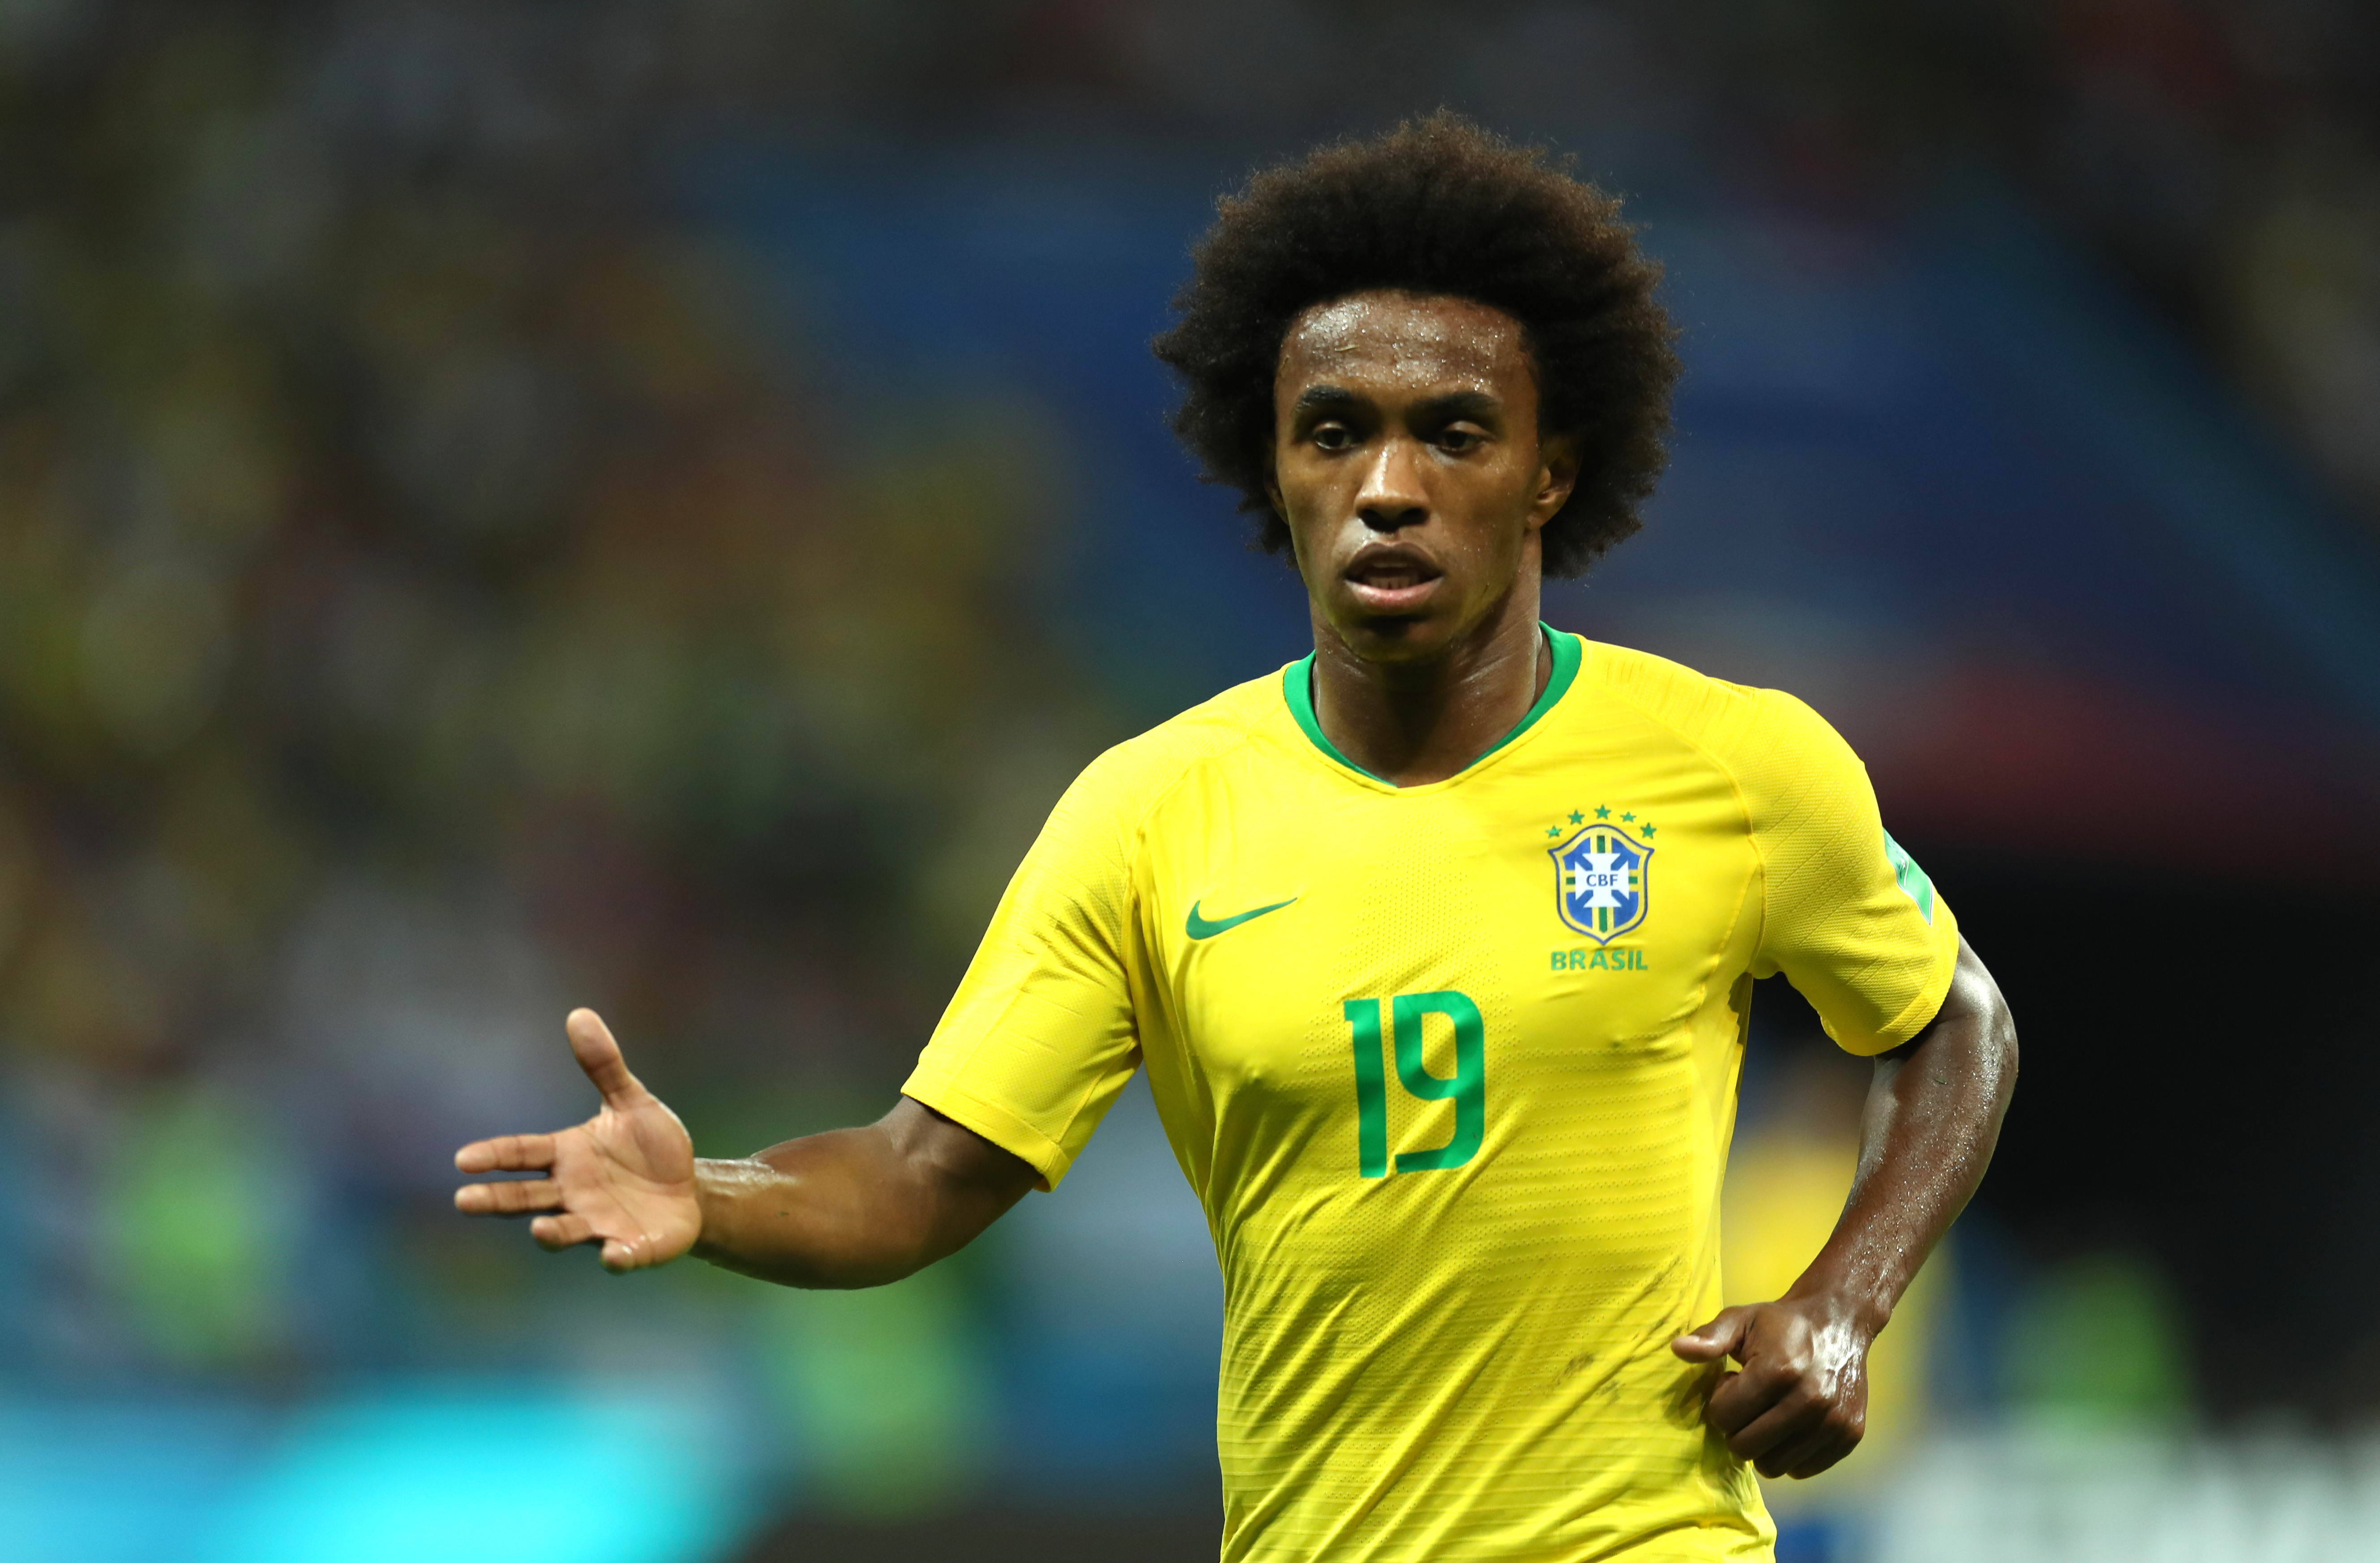 Willian called up by Brazil as Neymar replacement for Copa América